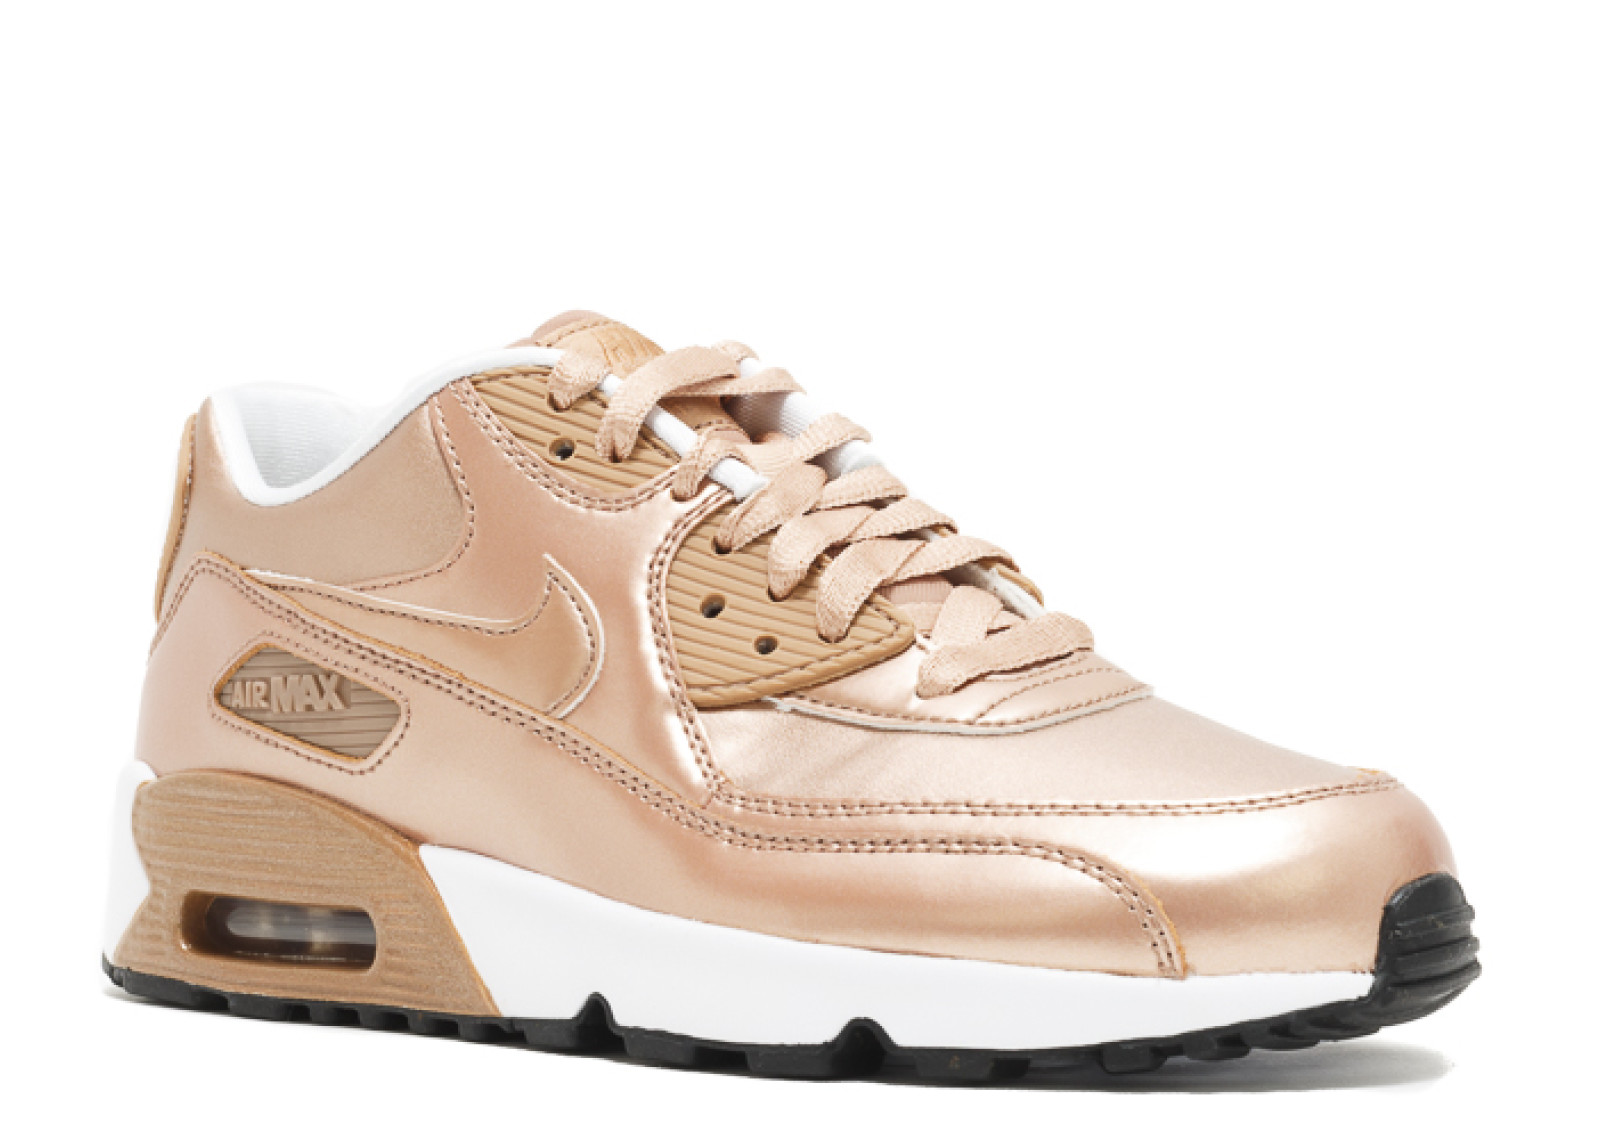 990484cff604 Nike - Unisex - Air Max 90 Se Ltr (Gs)  Metallic Bronze  - 859633-900 ...